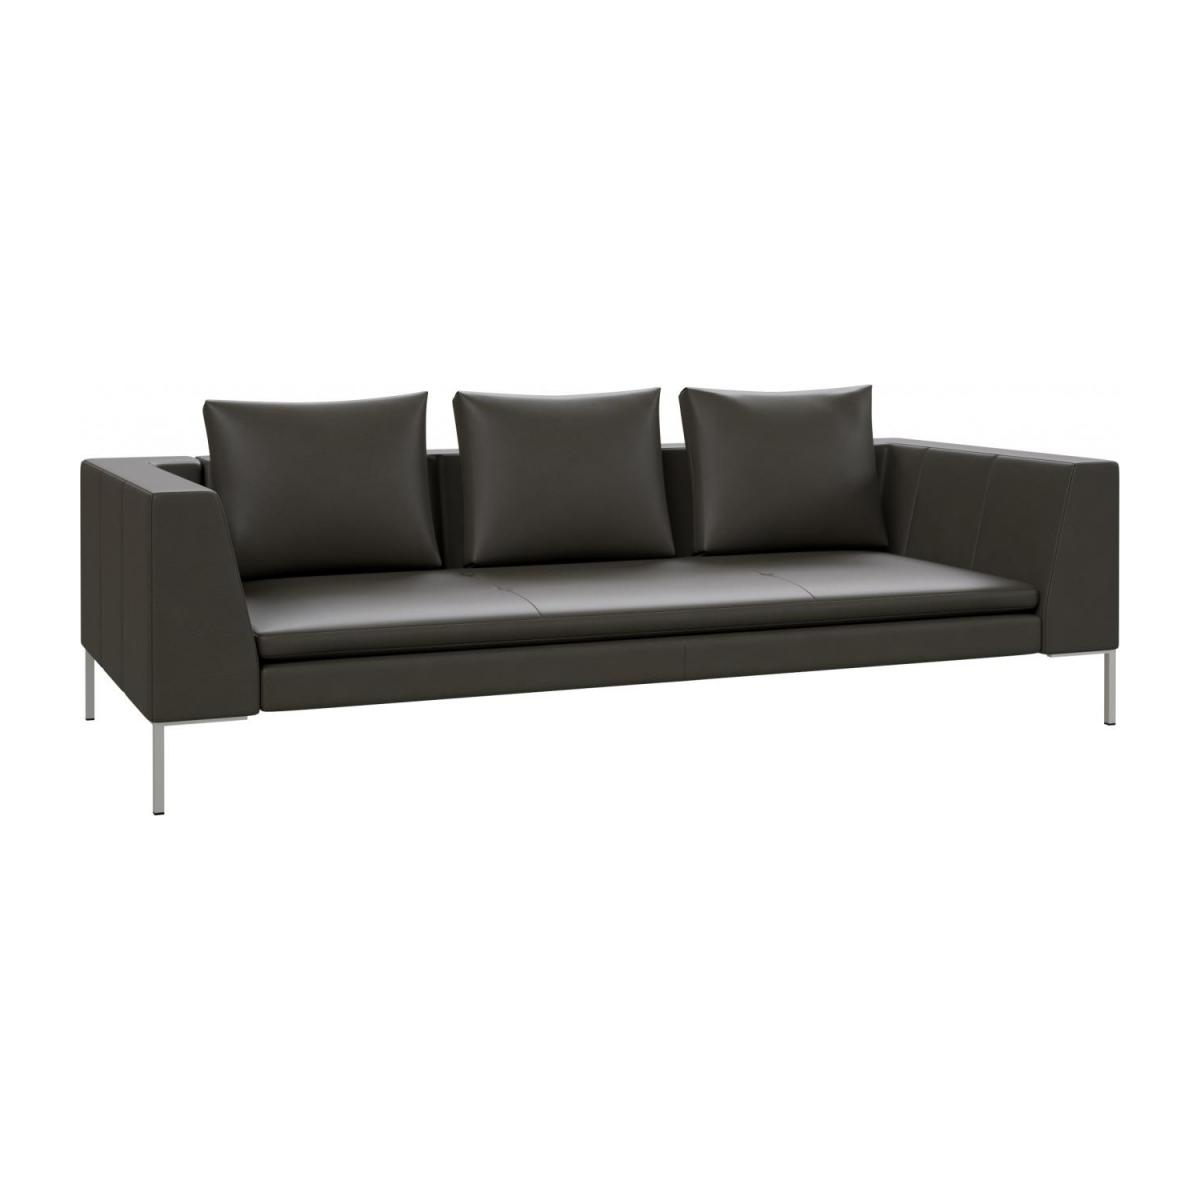 3 seater sofa in Savoy semi-aniline leather, grey